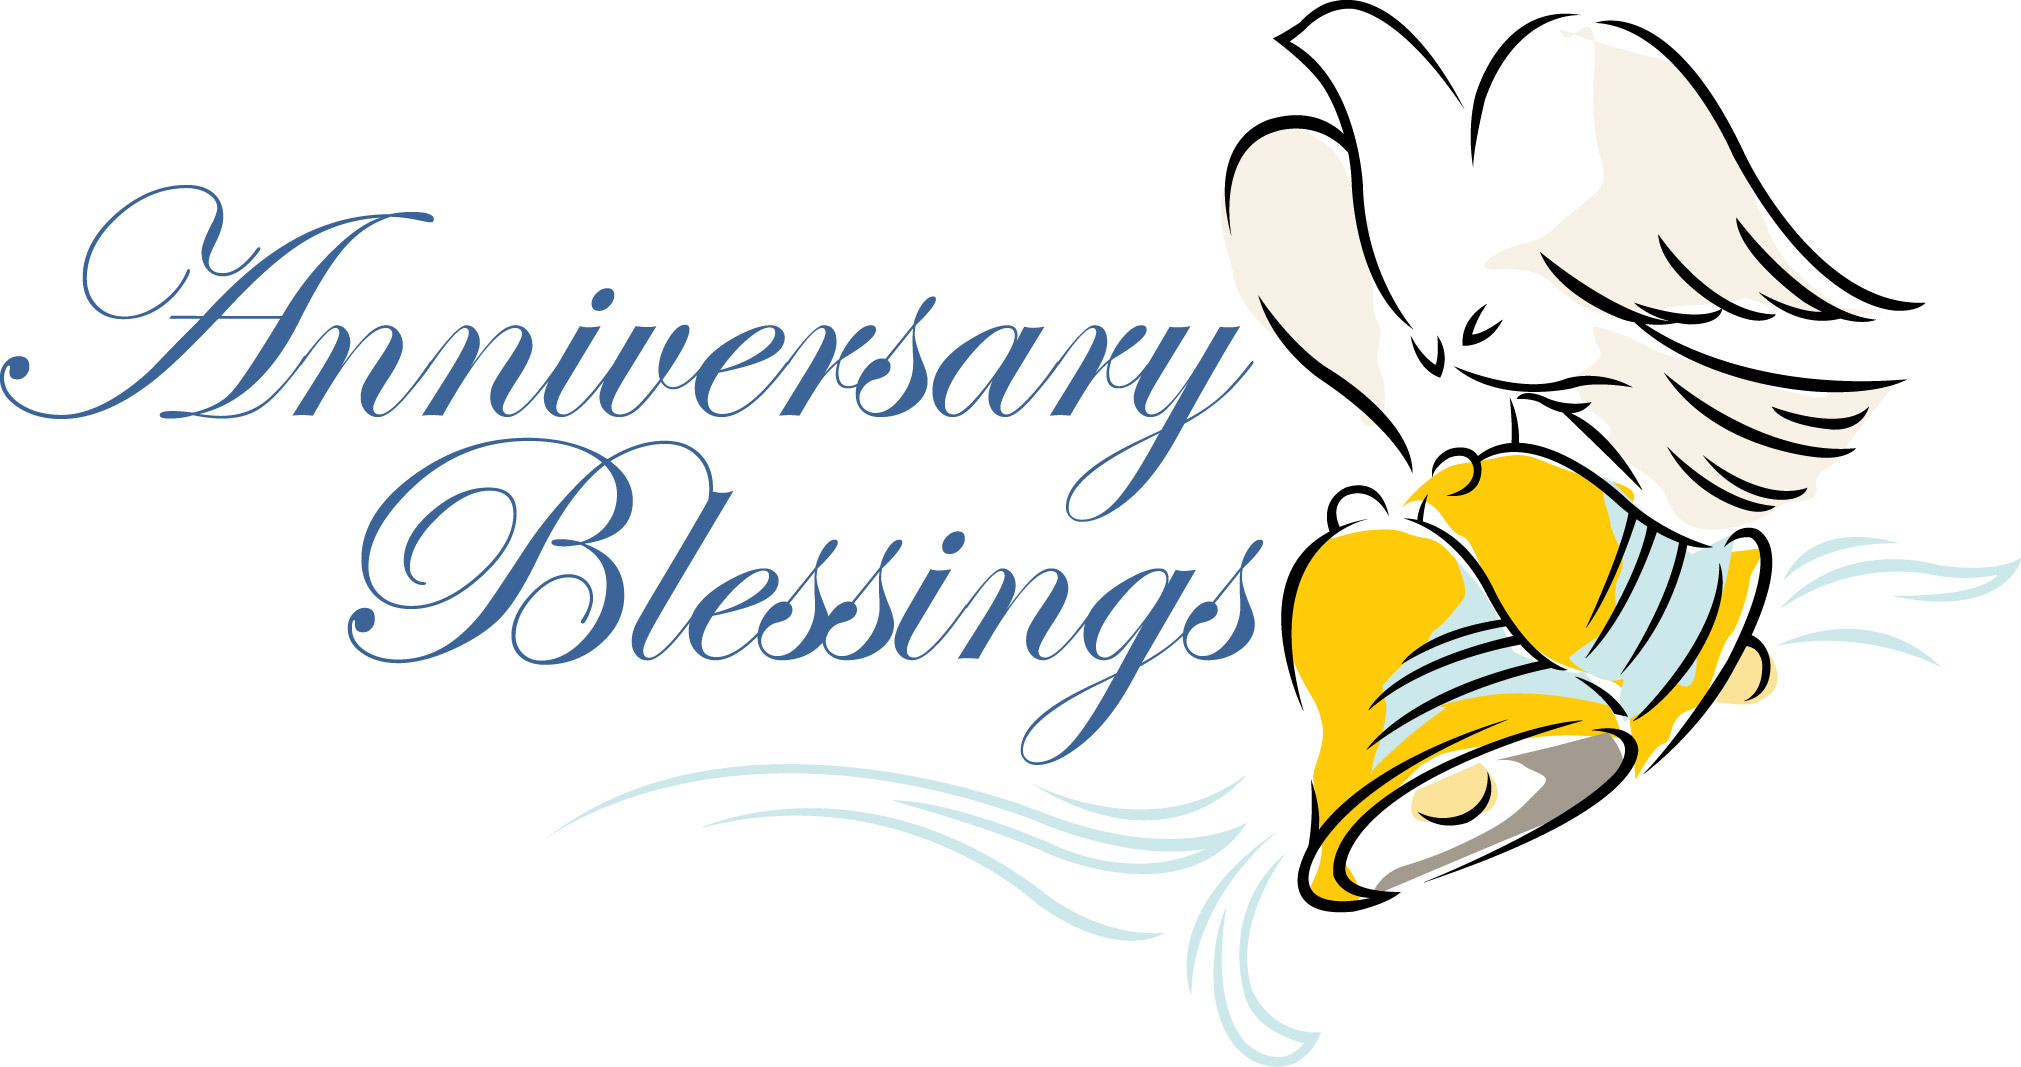 Free Church Anniversary Cliparts, Download Free Clip Art, Free Clip.